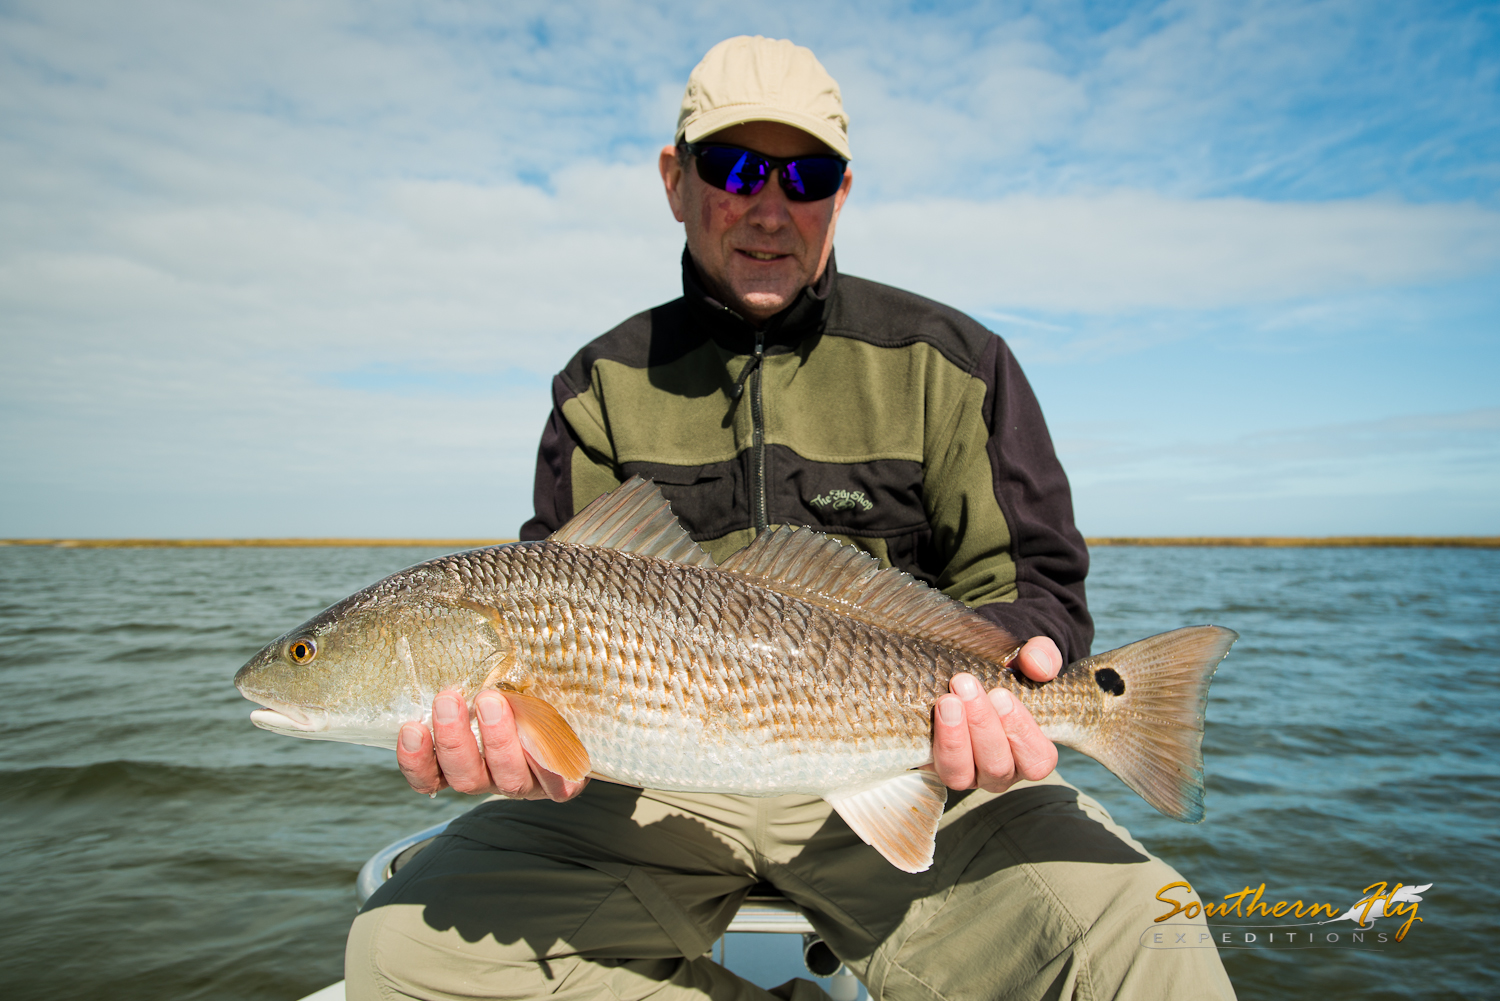 best fishing guides in new orleans louisiana - southern fly expeditions and captain brandon keck